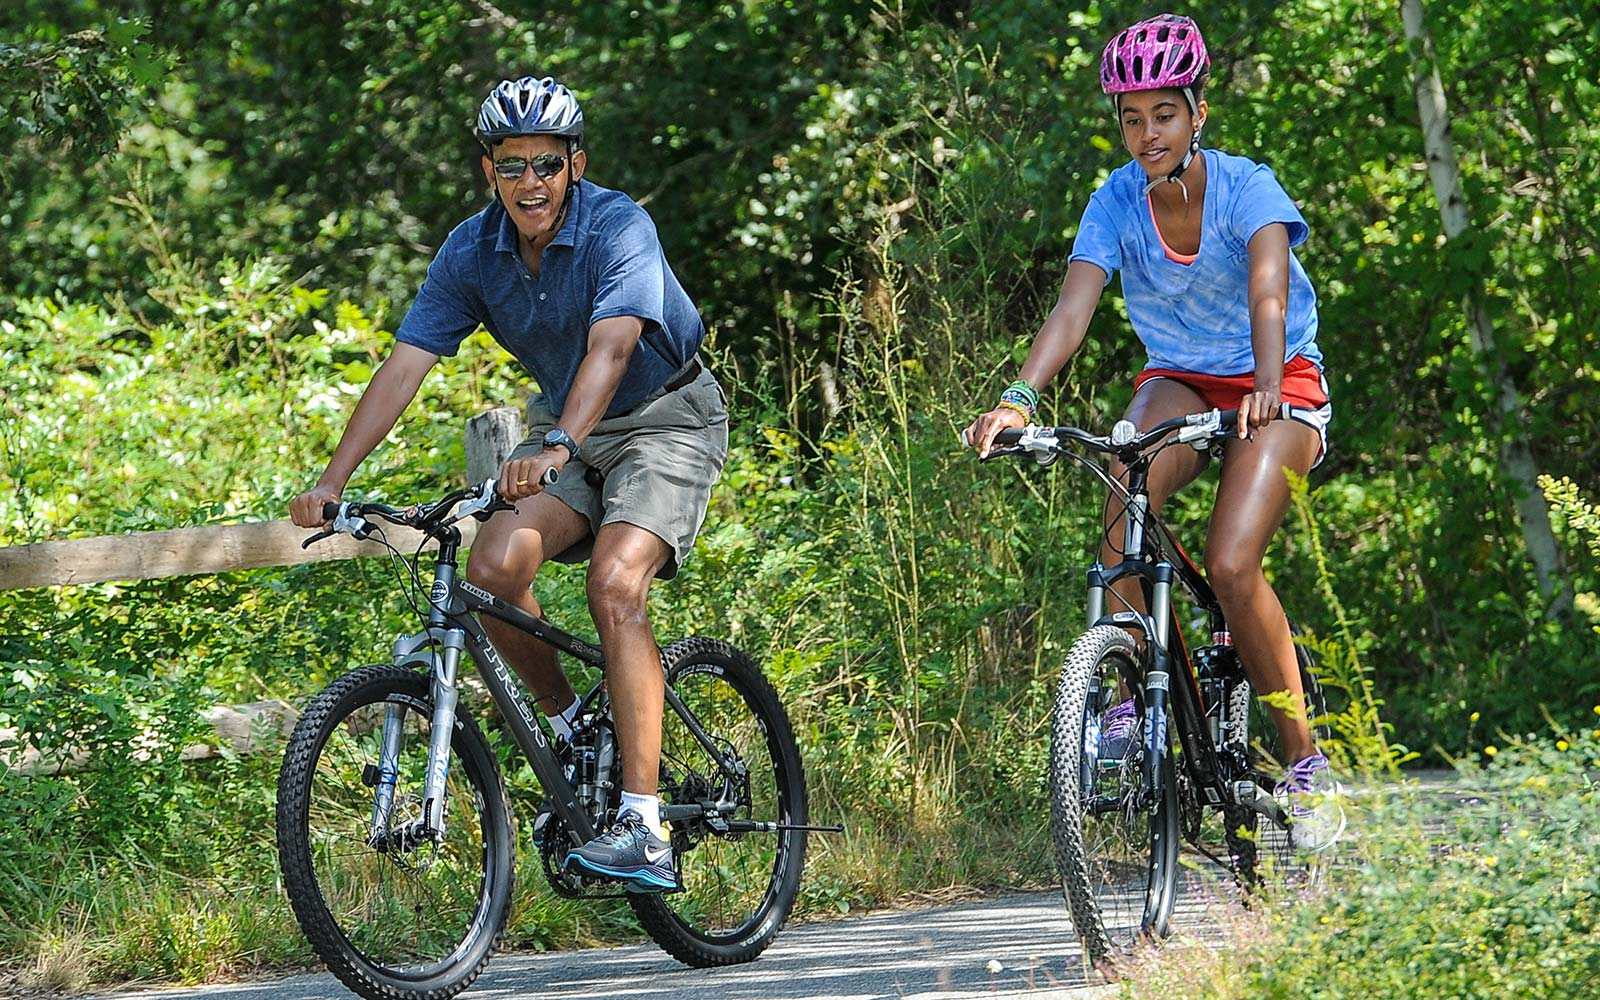 The Obamas Are Spending Another Summer Vacation at Martha's Vineyard